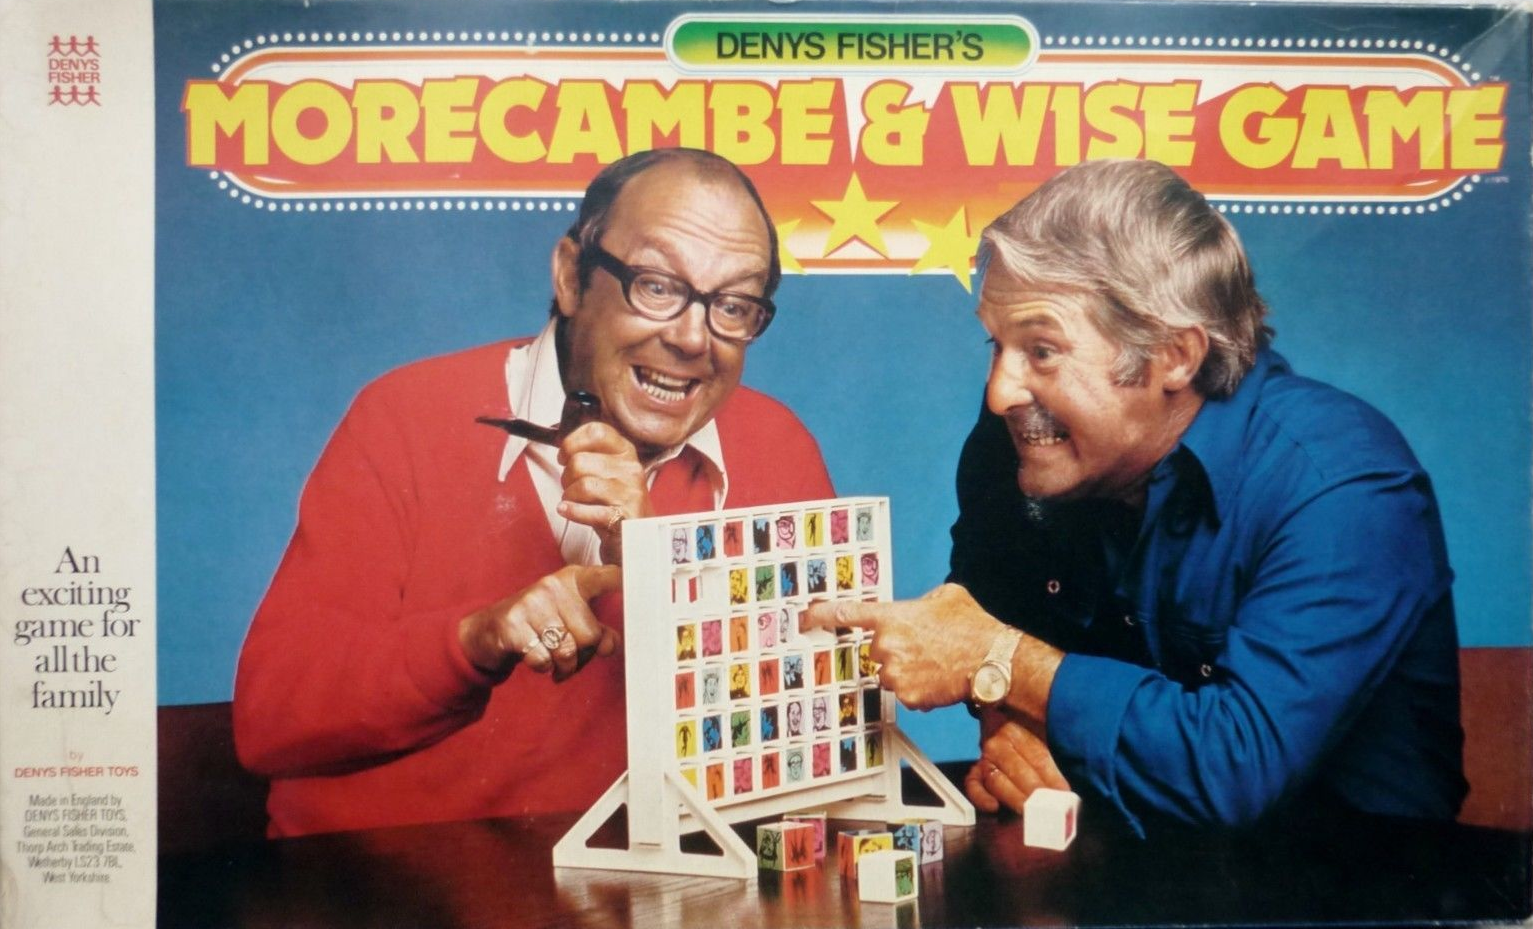 The Morecambe And Wise Game by Denys Fisher - listen to Stephen O'Brien and Tim Worthington chatting about it in Looks Unfamiliar!